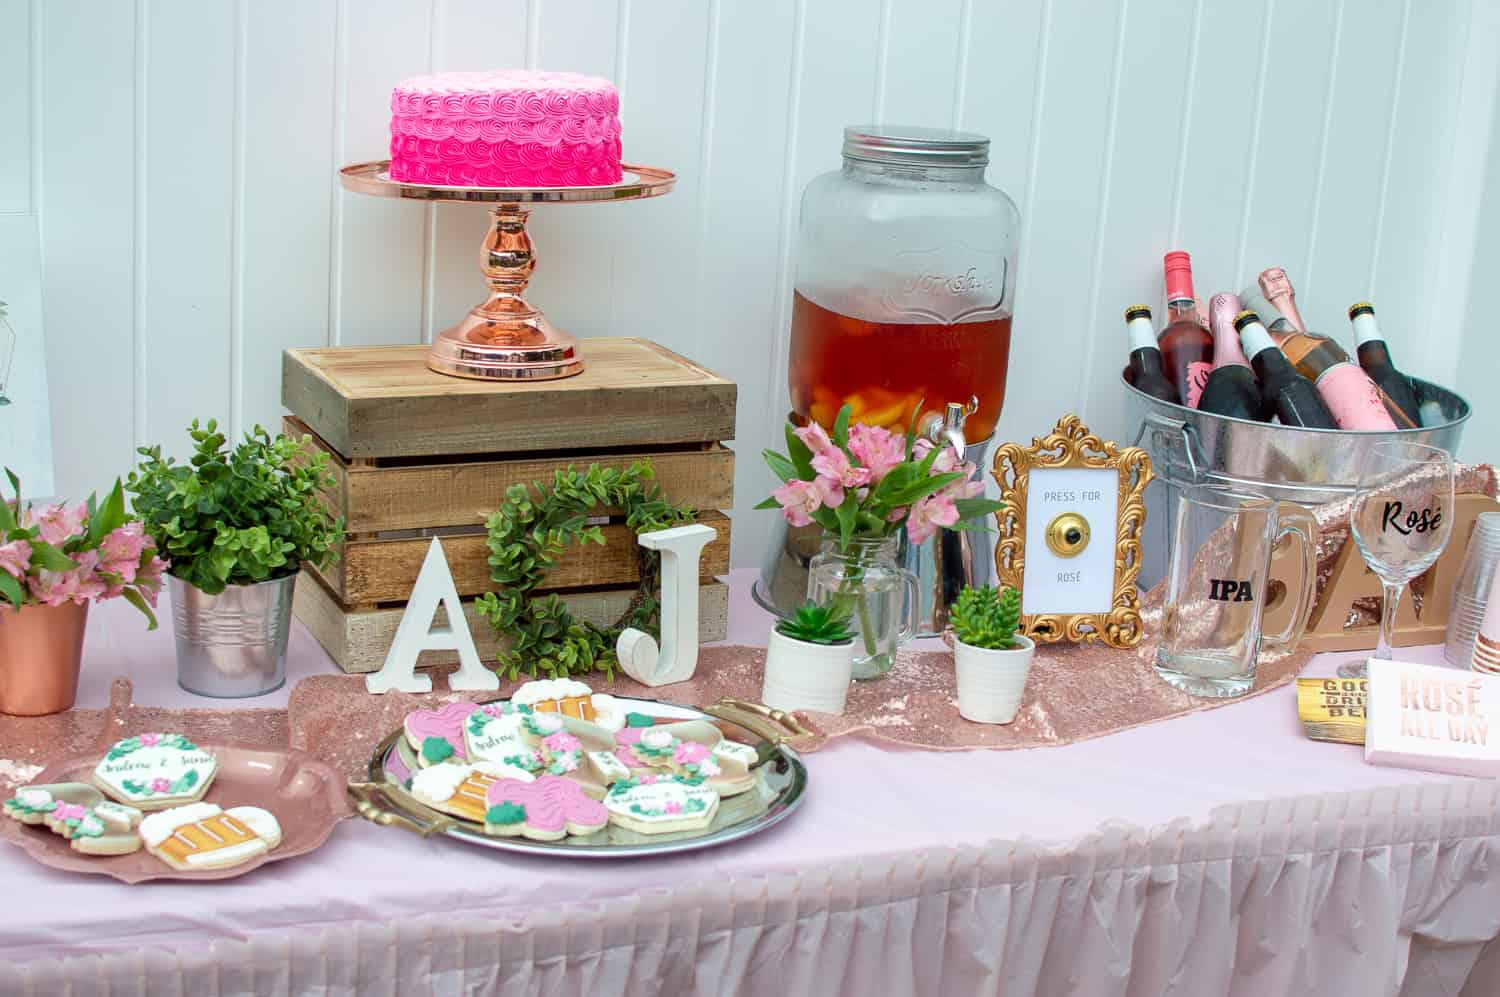 Rosé and IPA Wedding Shower Dessert and Drinks Table